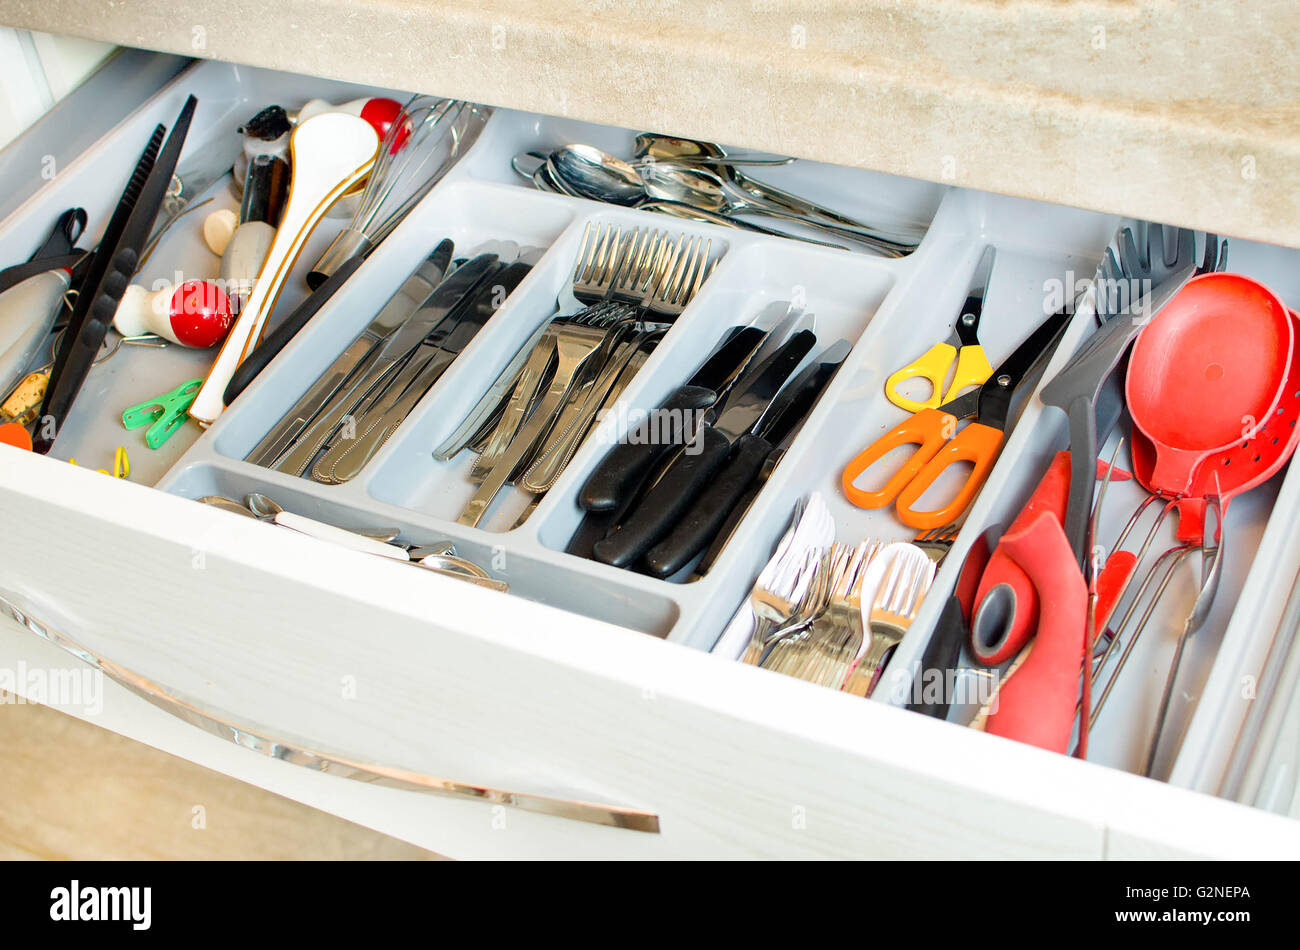 cutlery drawer - Stock Image